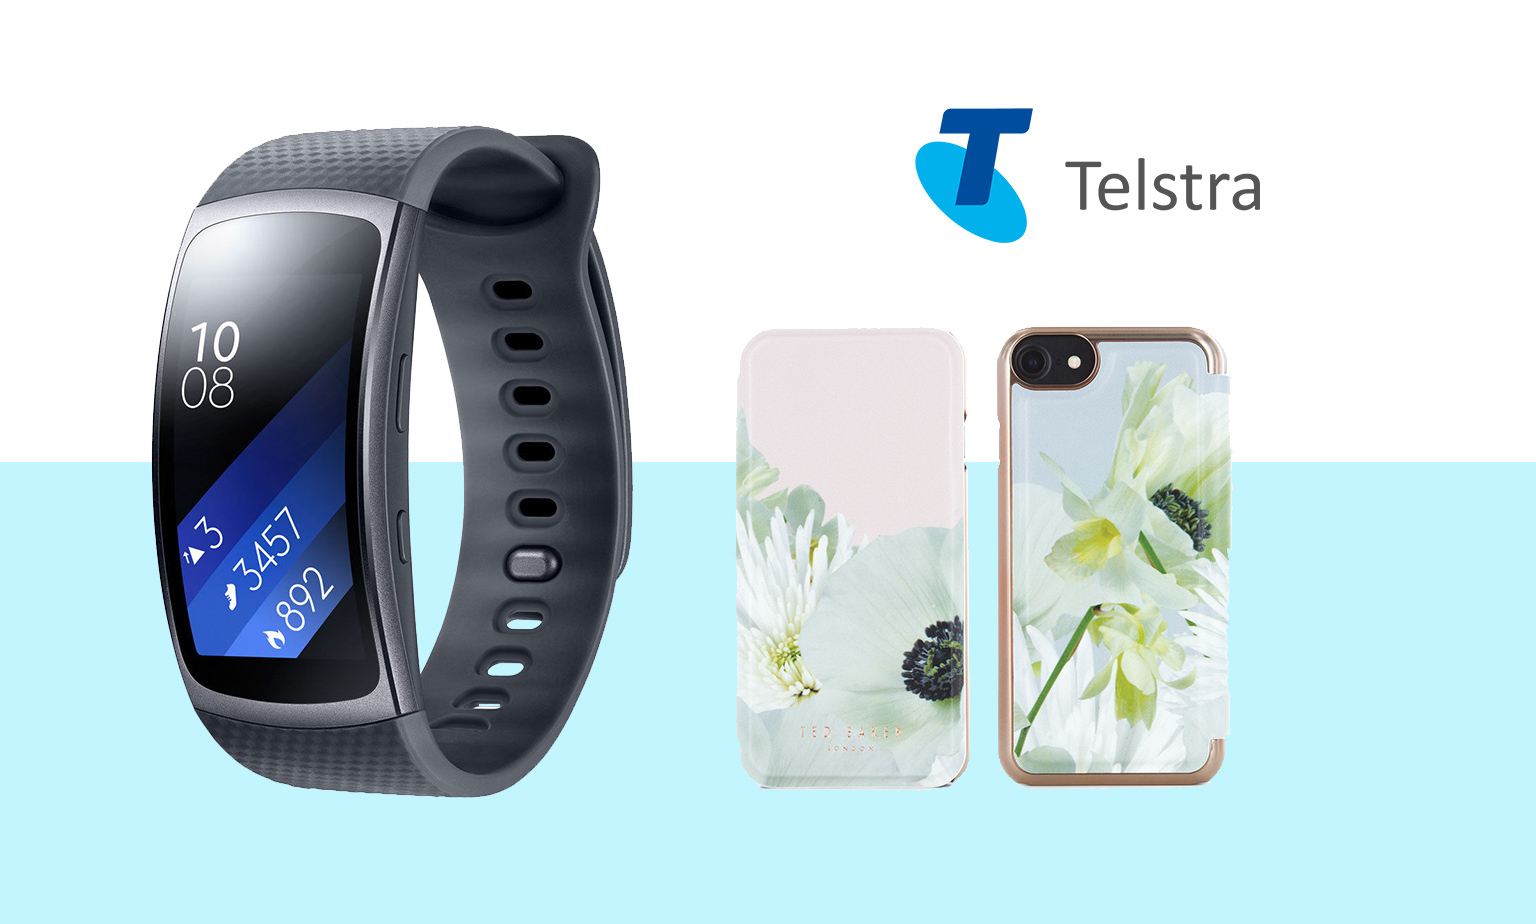 Hot Telstra Deals? Yes Please!